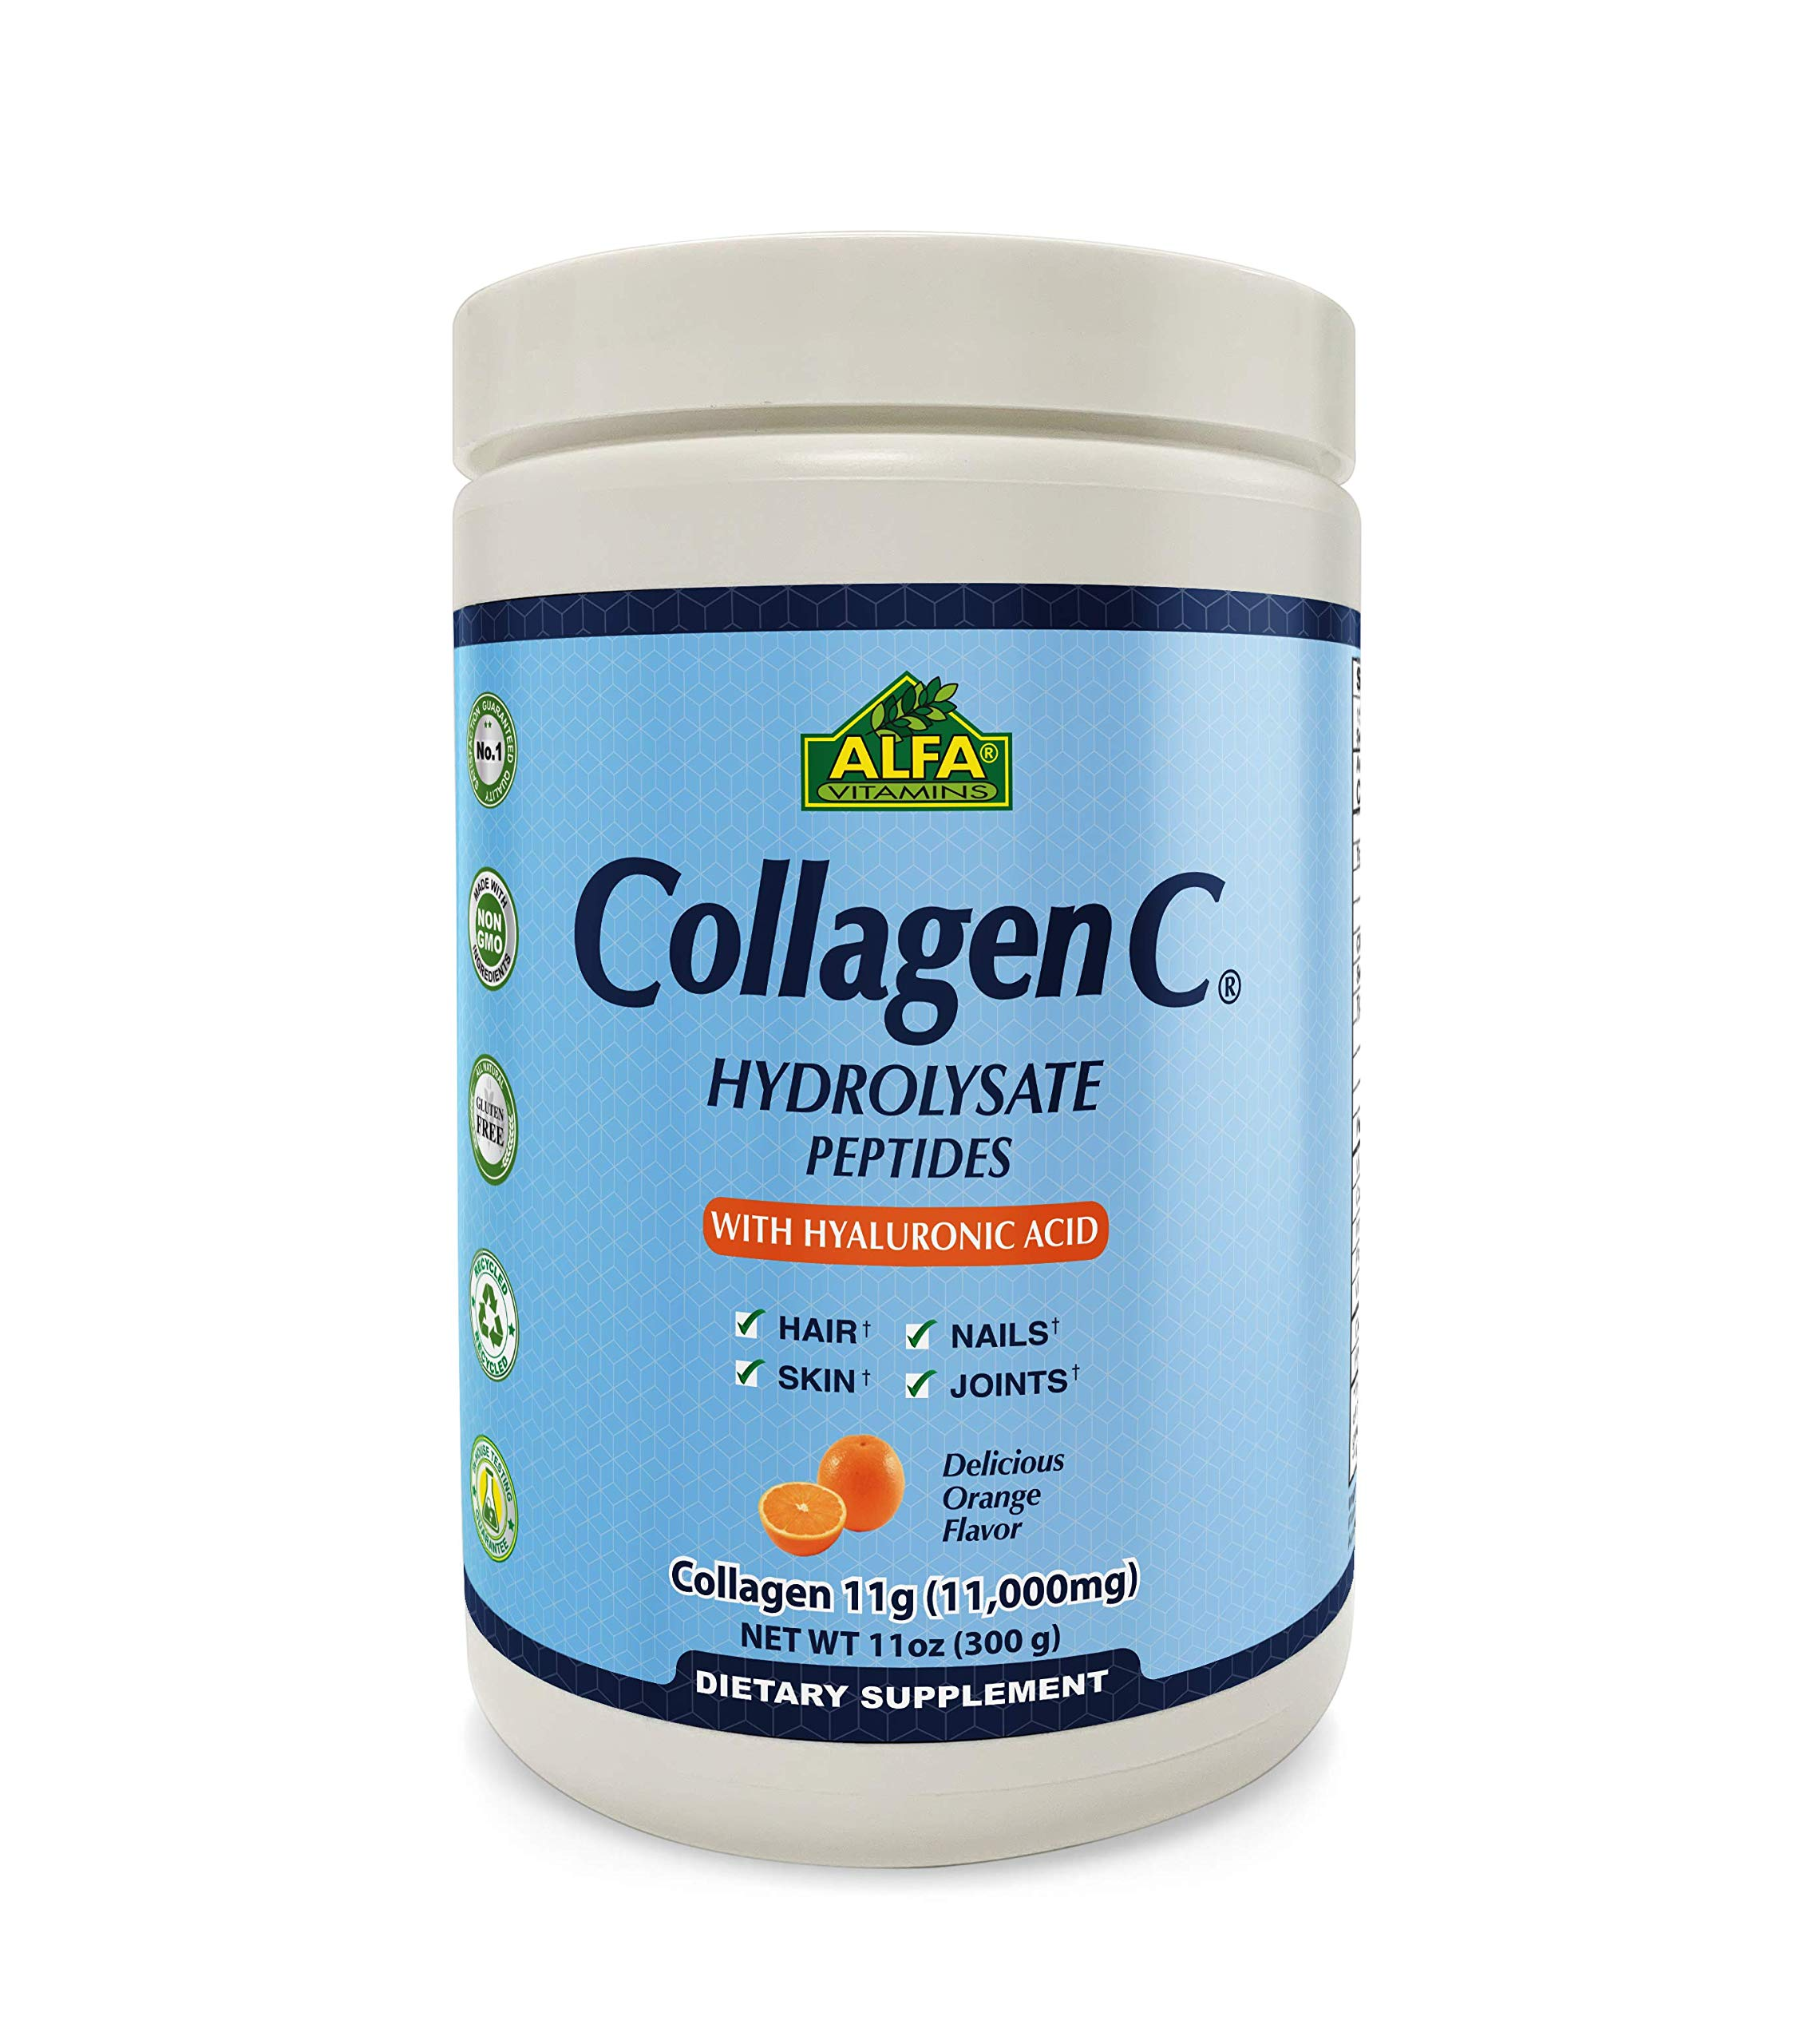 CollagenC Hydrolysate Peptides Powder Supplement with 1,000mg Vitamin C - Premium Quality Source of Nutrients - Skin, Hair, Nails, Immune Boost & Joints Support - Orange Flavor -11 OZ